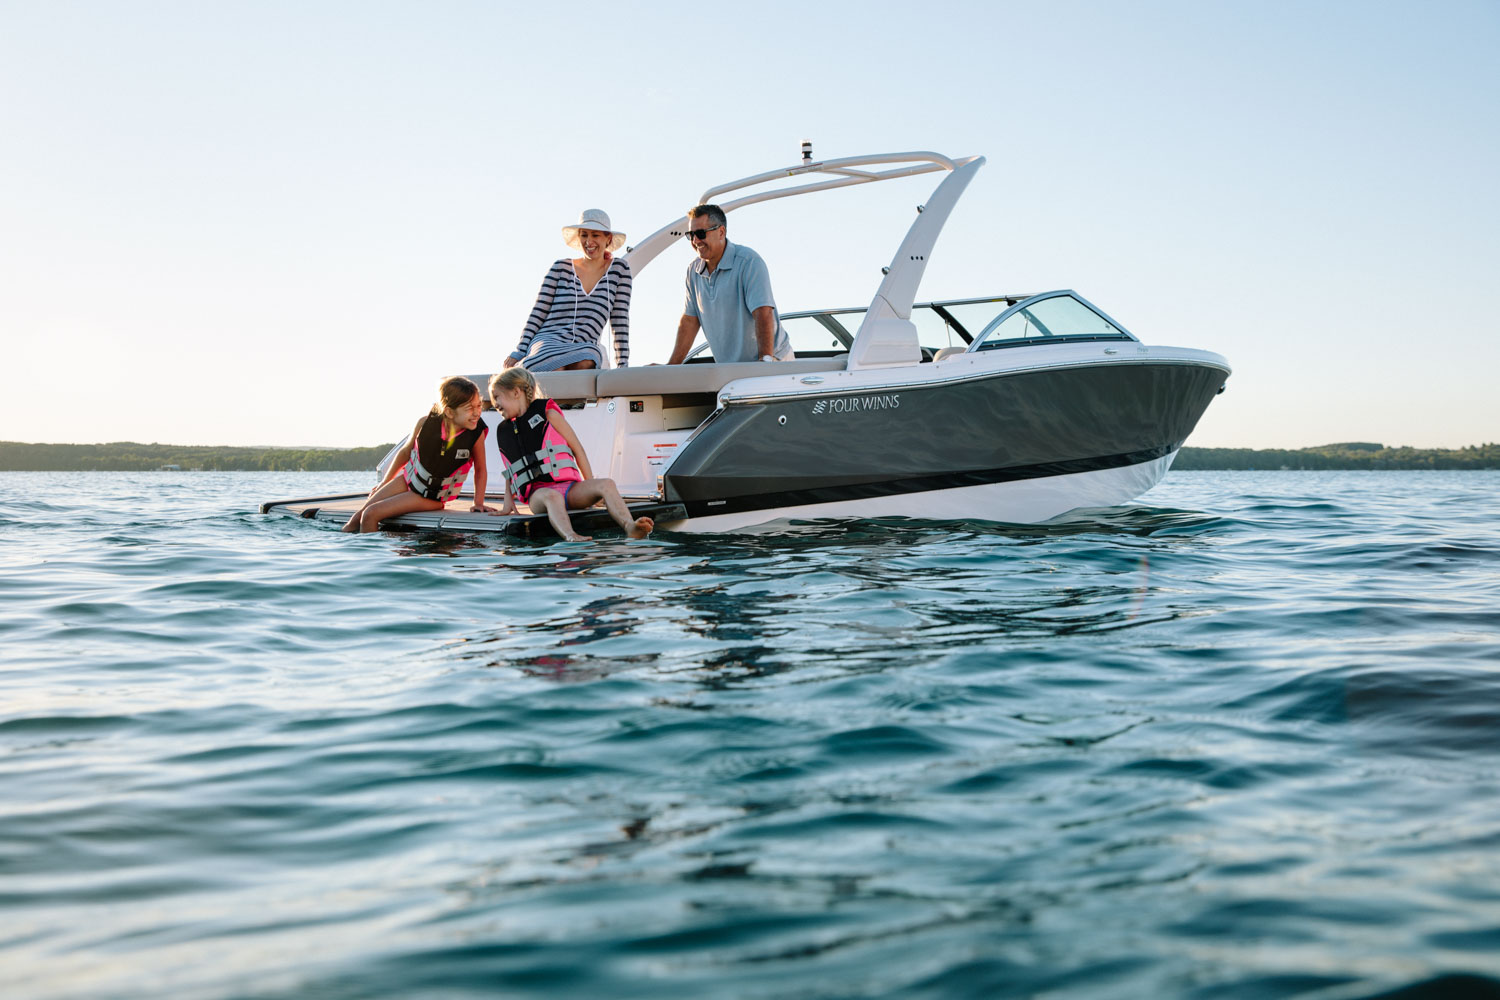 Outboards Vs. Sterndrives: What's The Best Choice For You?